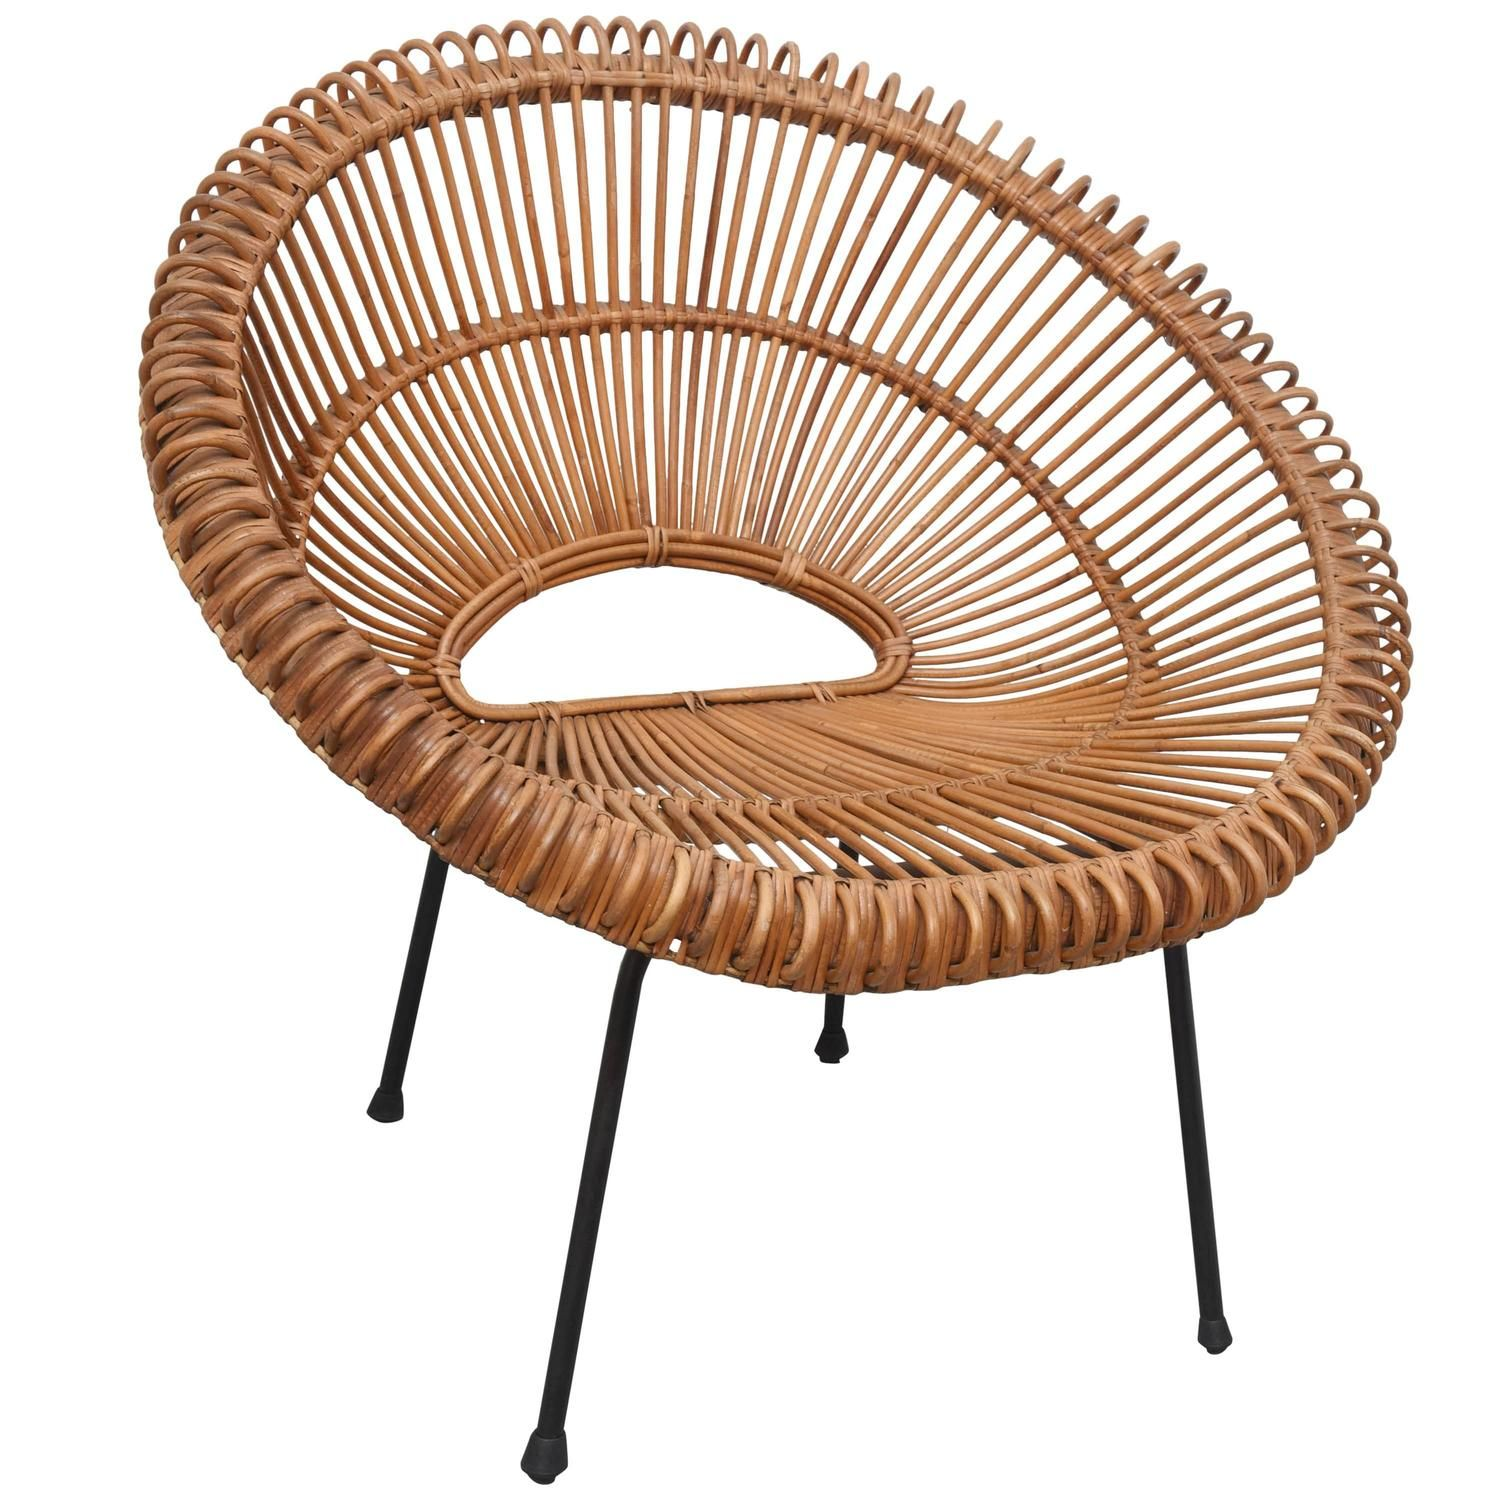 round wicker chair name high back dining chairs rattan by janine abraham dirk jan rol france